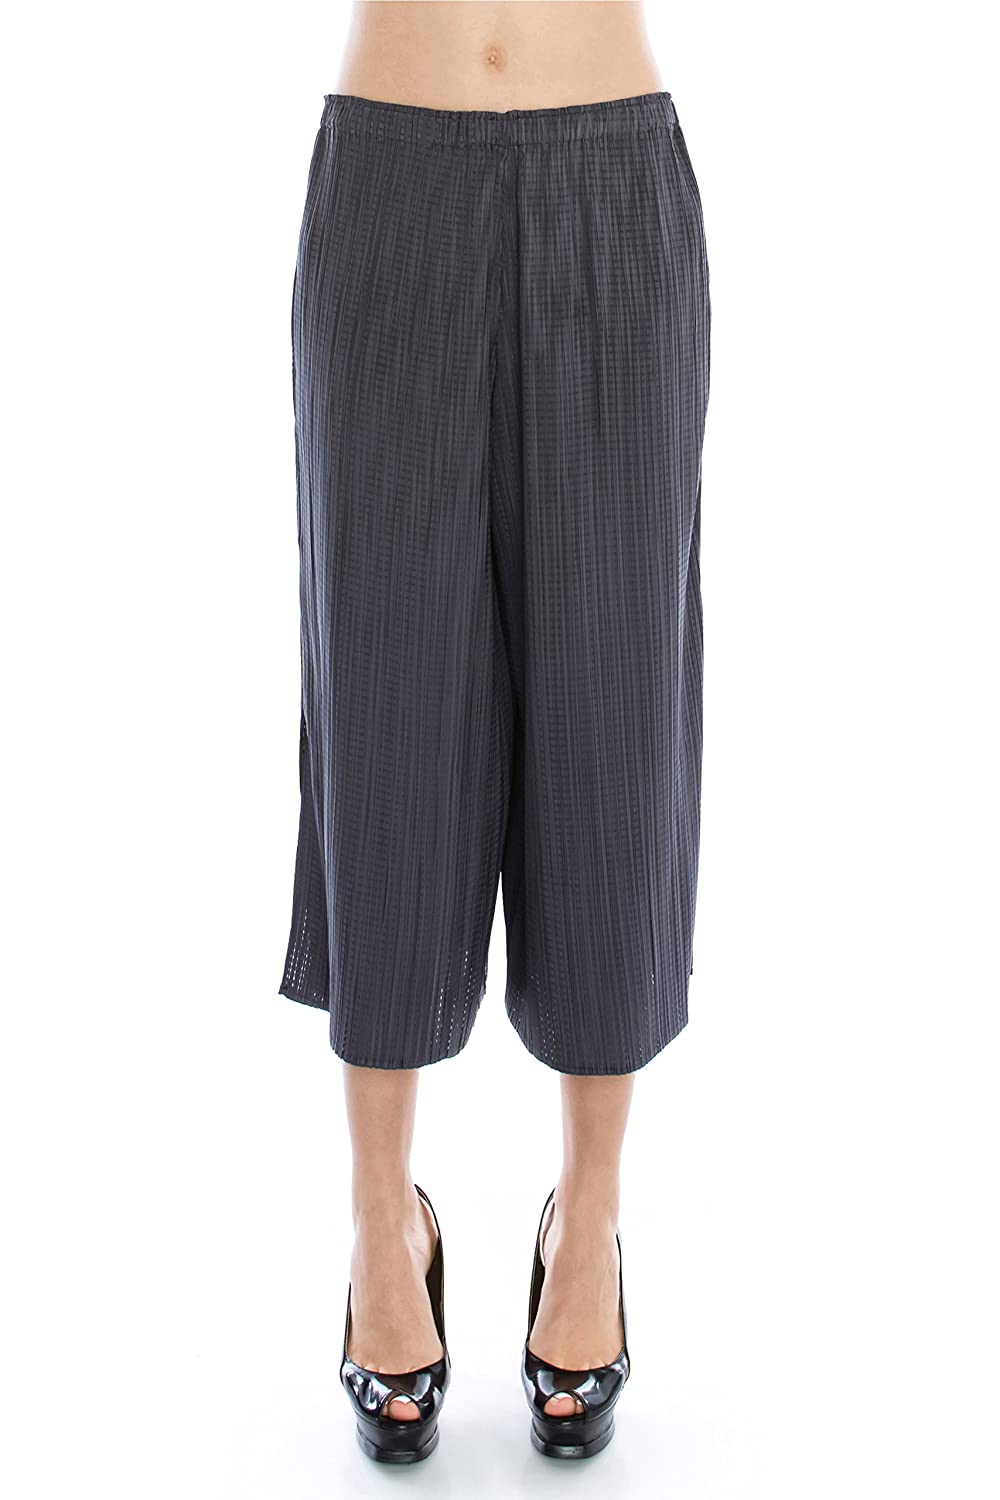 Petala Women's One Size Fits All Pleated Culottes Pants in Grey